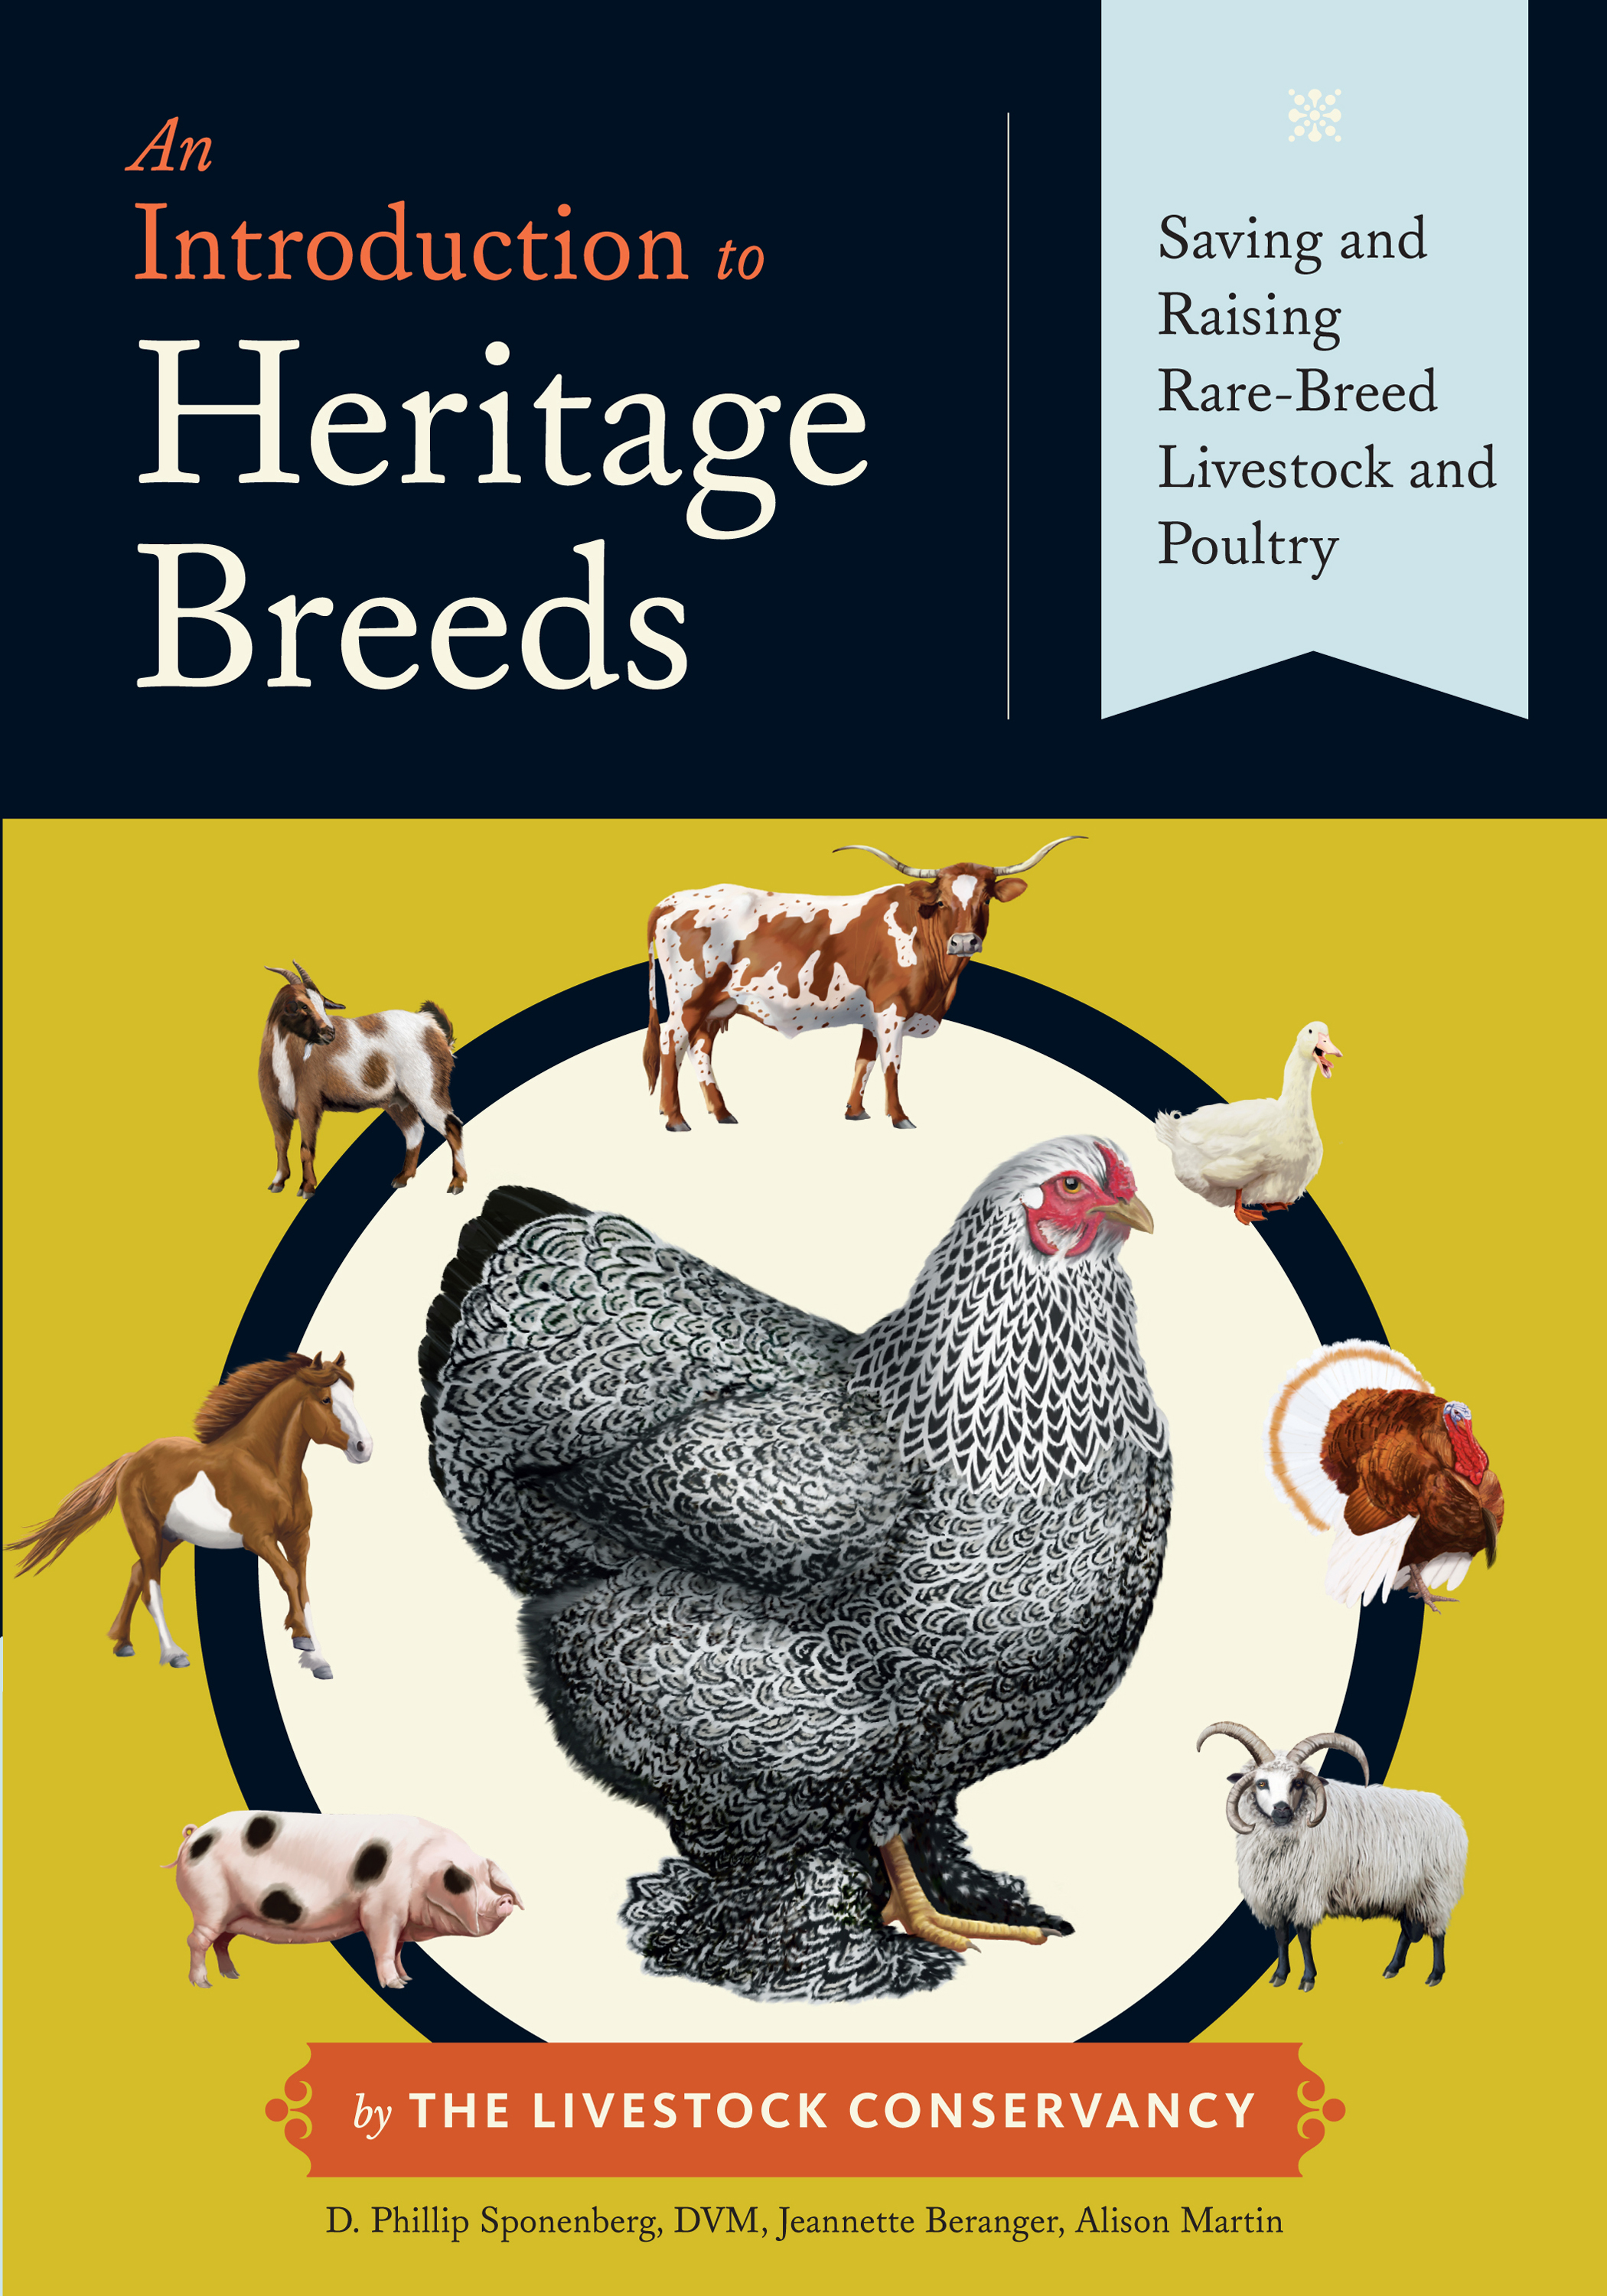 An Introduction to Heritage Breeds Saving and Raising Rare-Breed Livestock and Poultry - D. Phillip Sponenberg